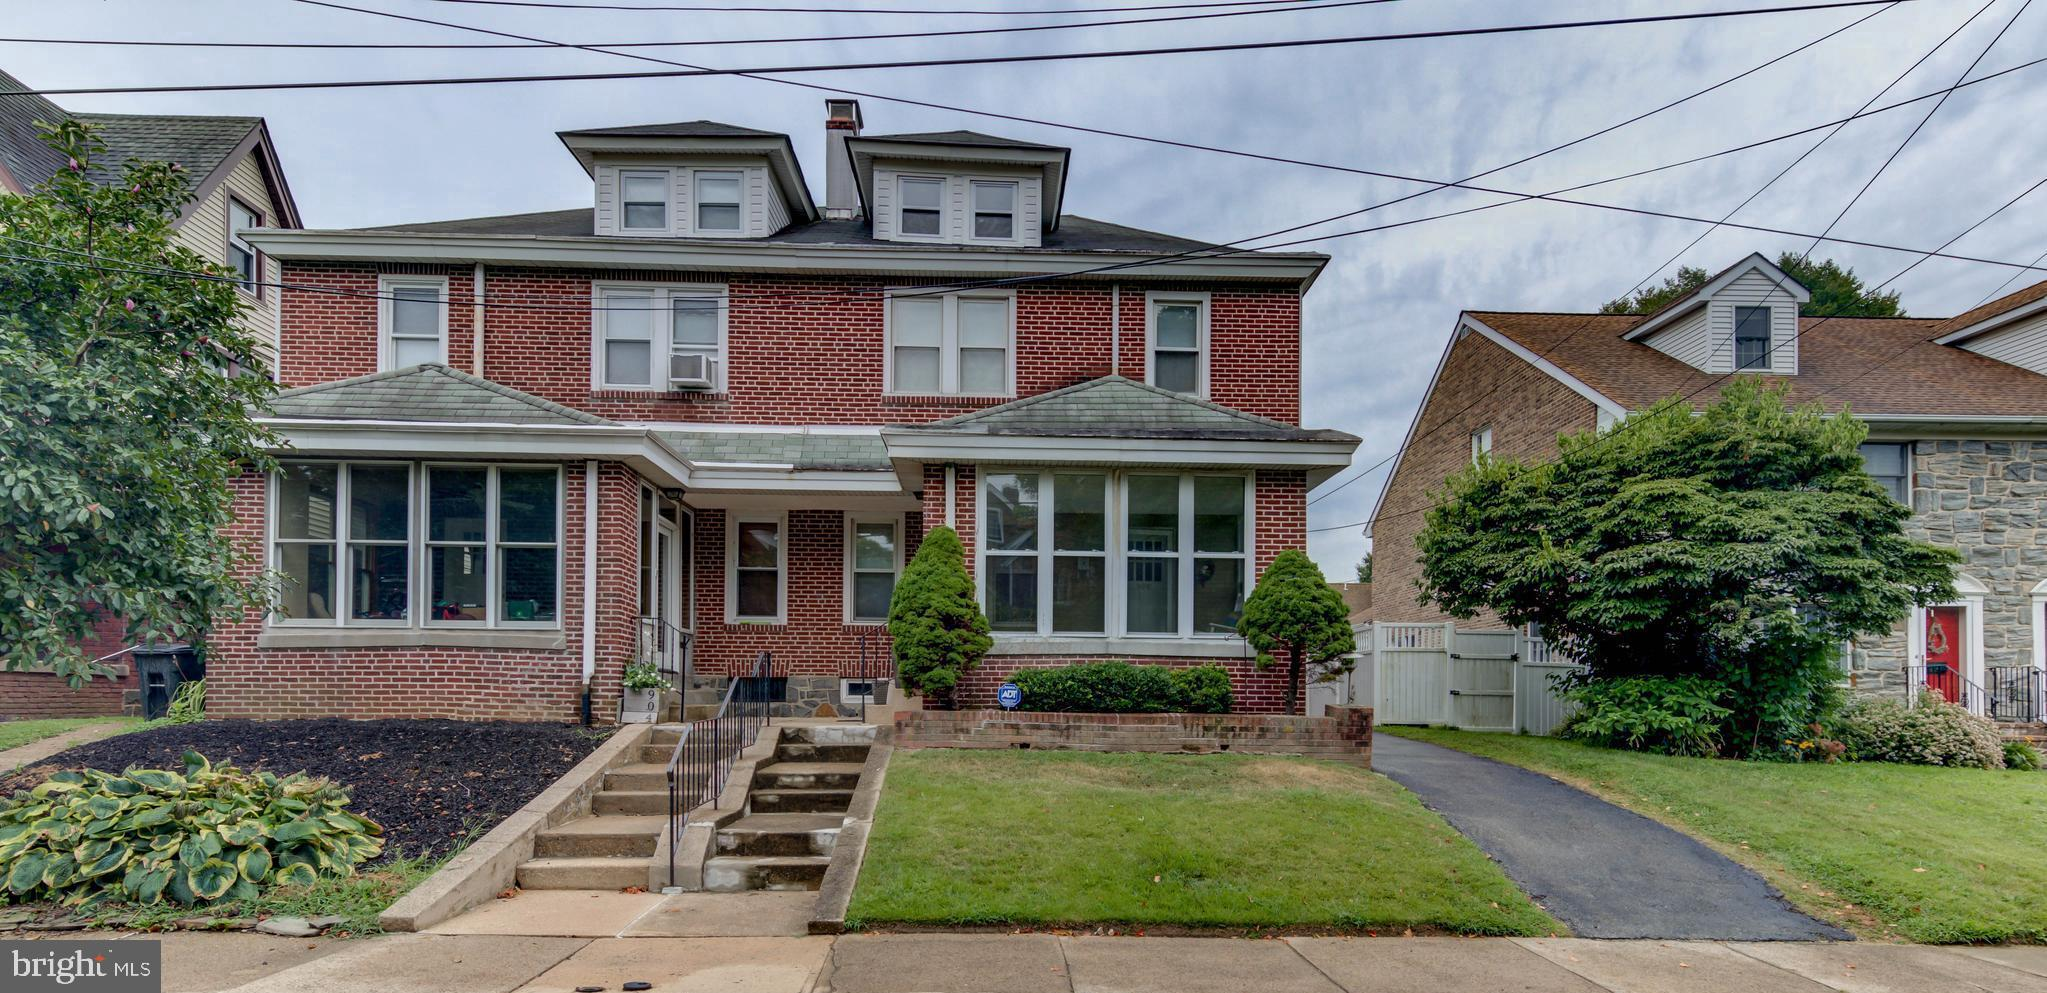 906 W 22Nd Street, Wilmington, DE 19802